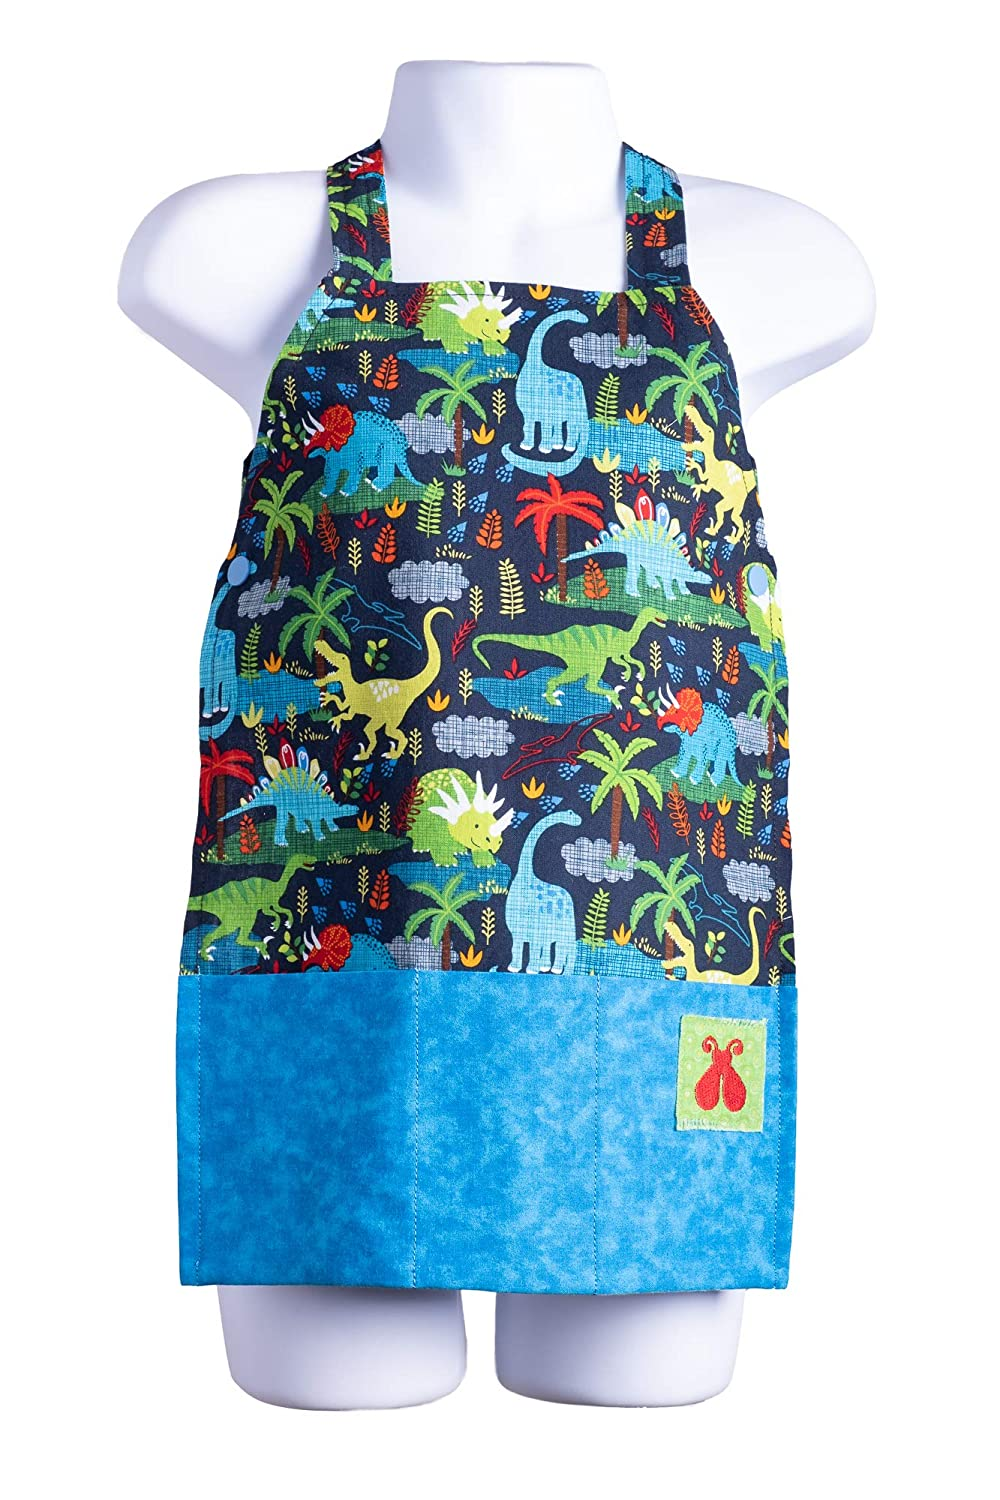 Bailey Bug Toddler Dinosaur STEM Play Apron for Girls and Boys Arts, Crafts, Digging, Experiments and Kitchen Fun (Medium)